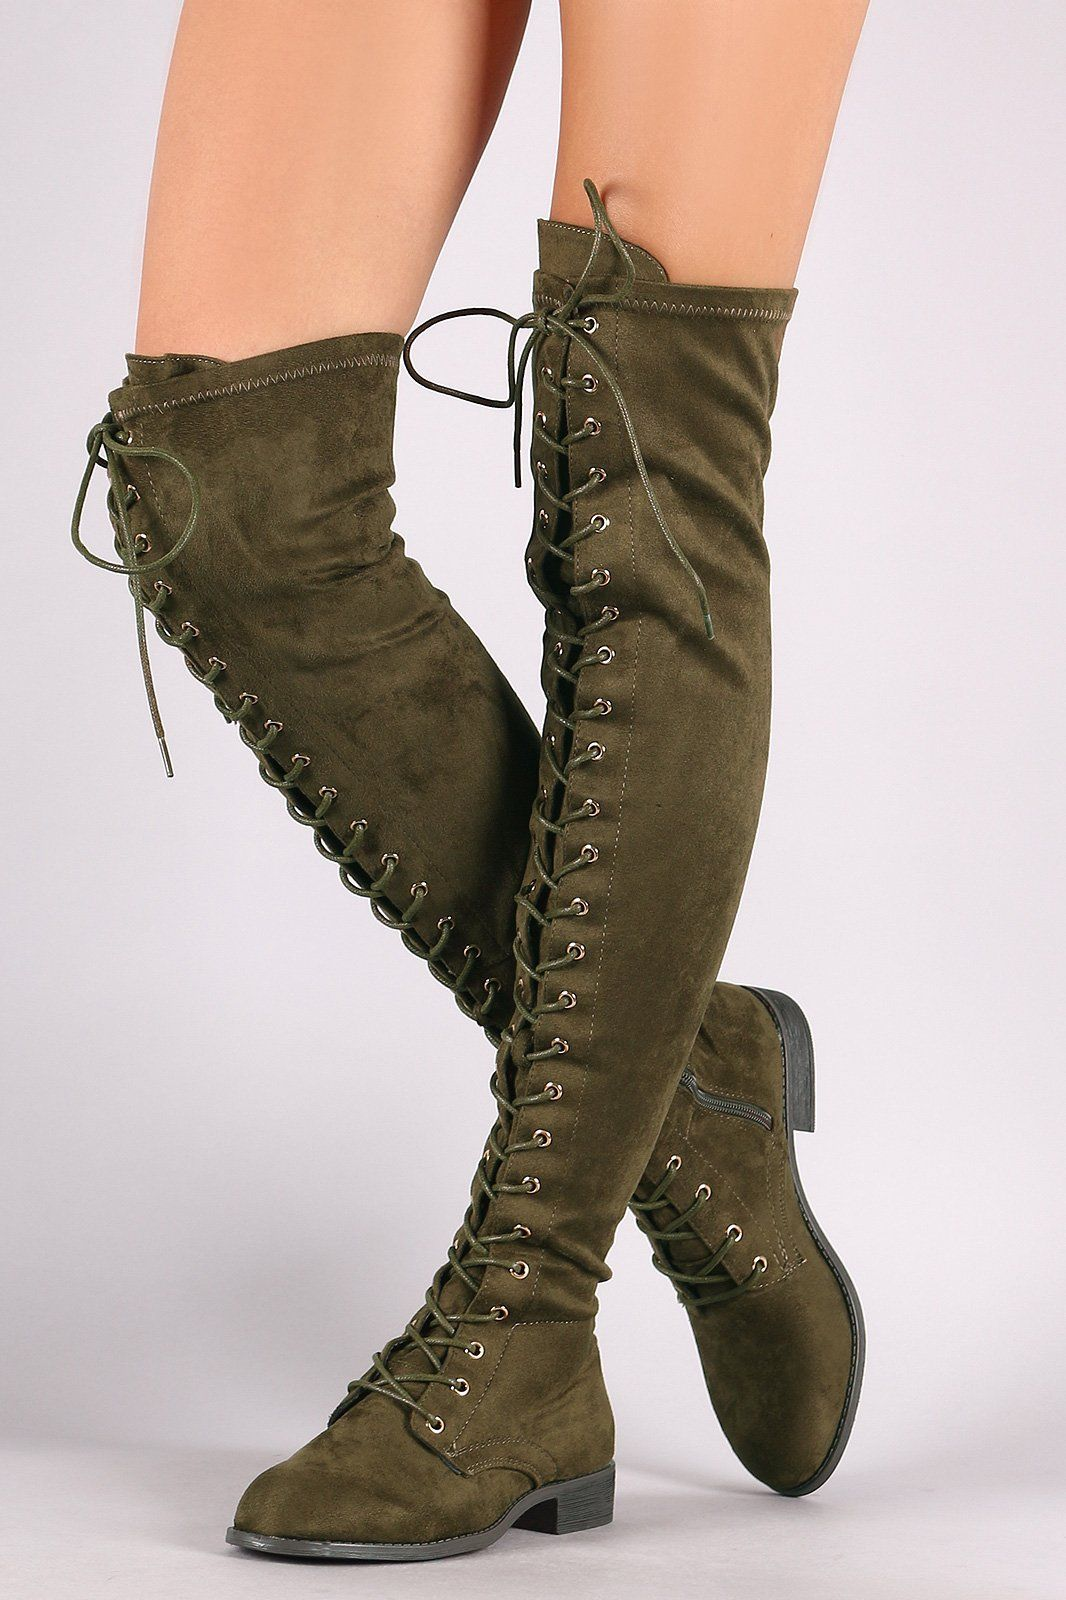 Wild Diva Lounge Suede Lace Up Over-The-Knee Combat Boots in 2019 ... 09afc668df2